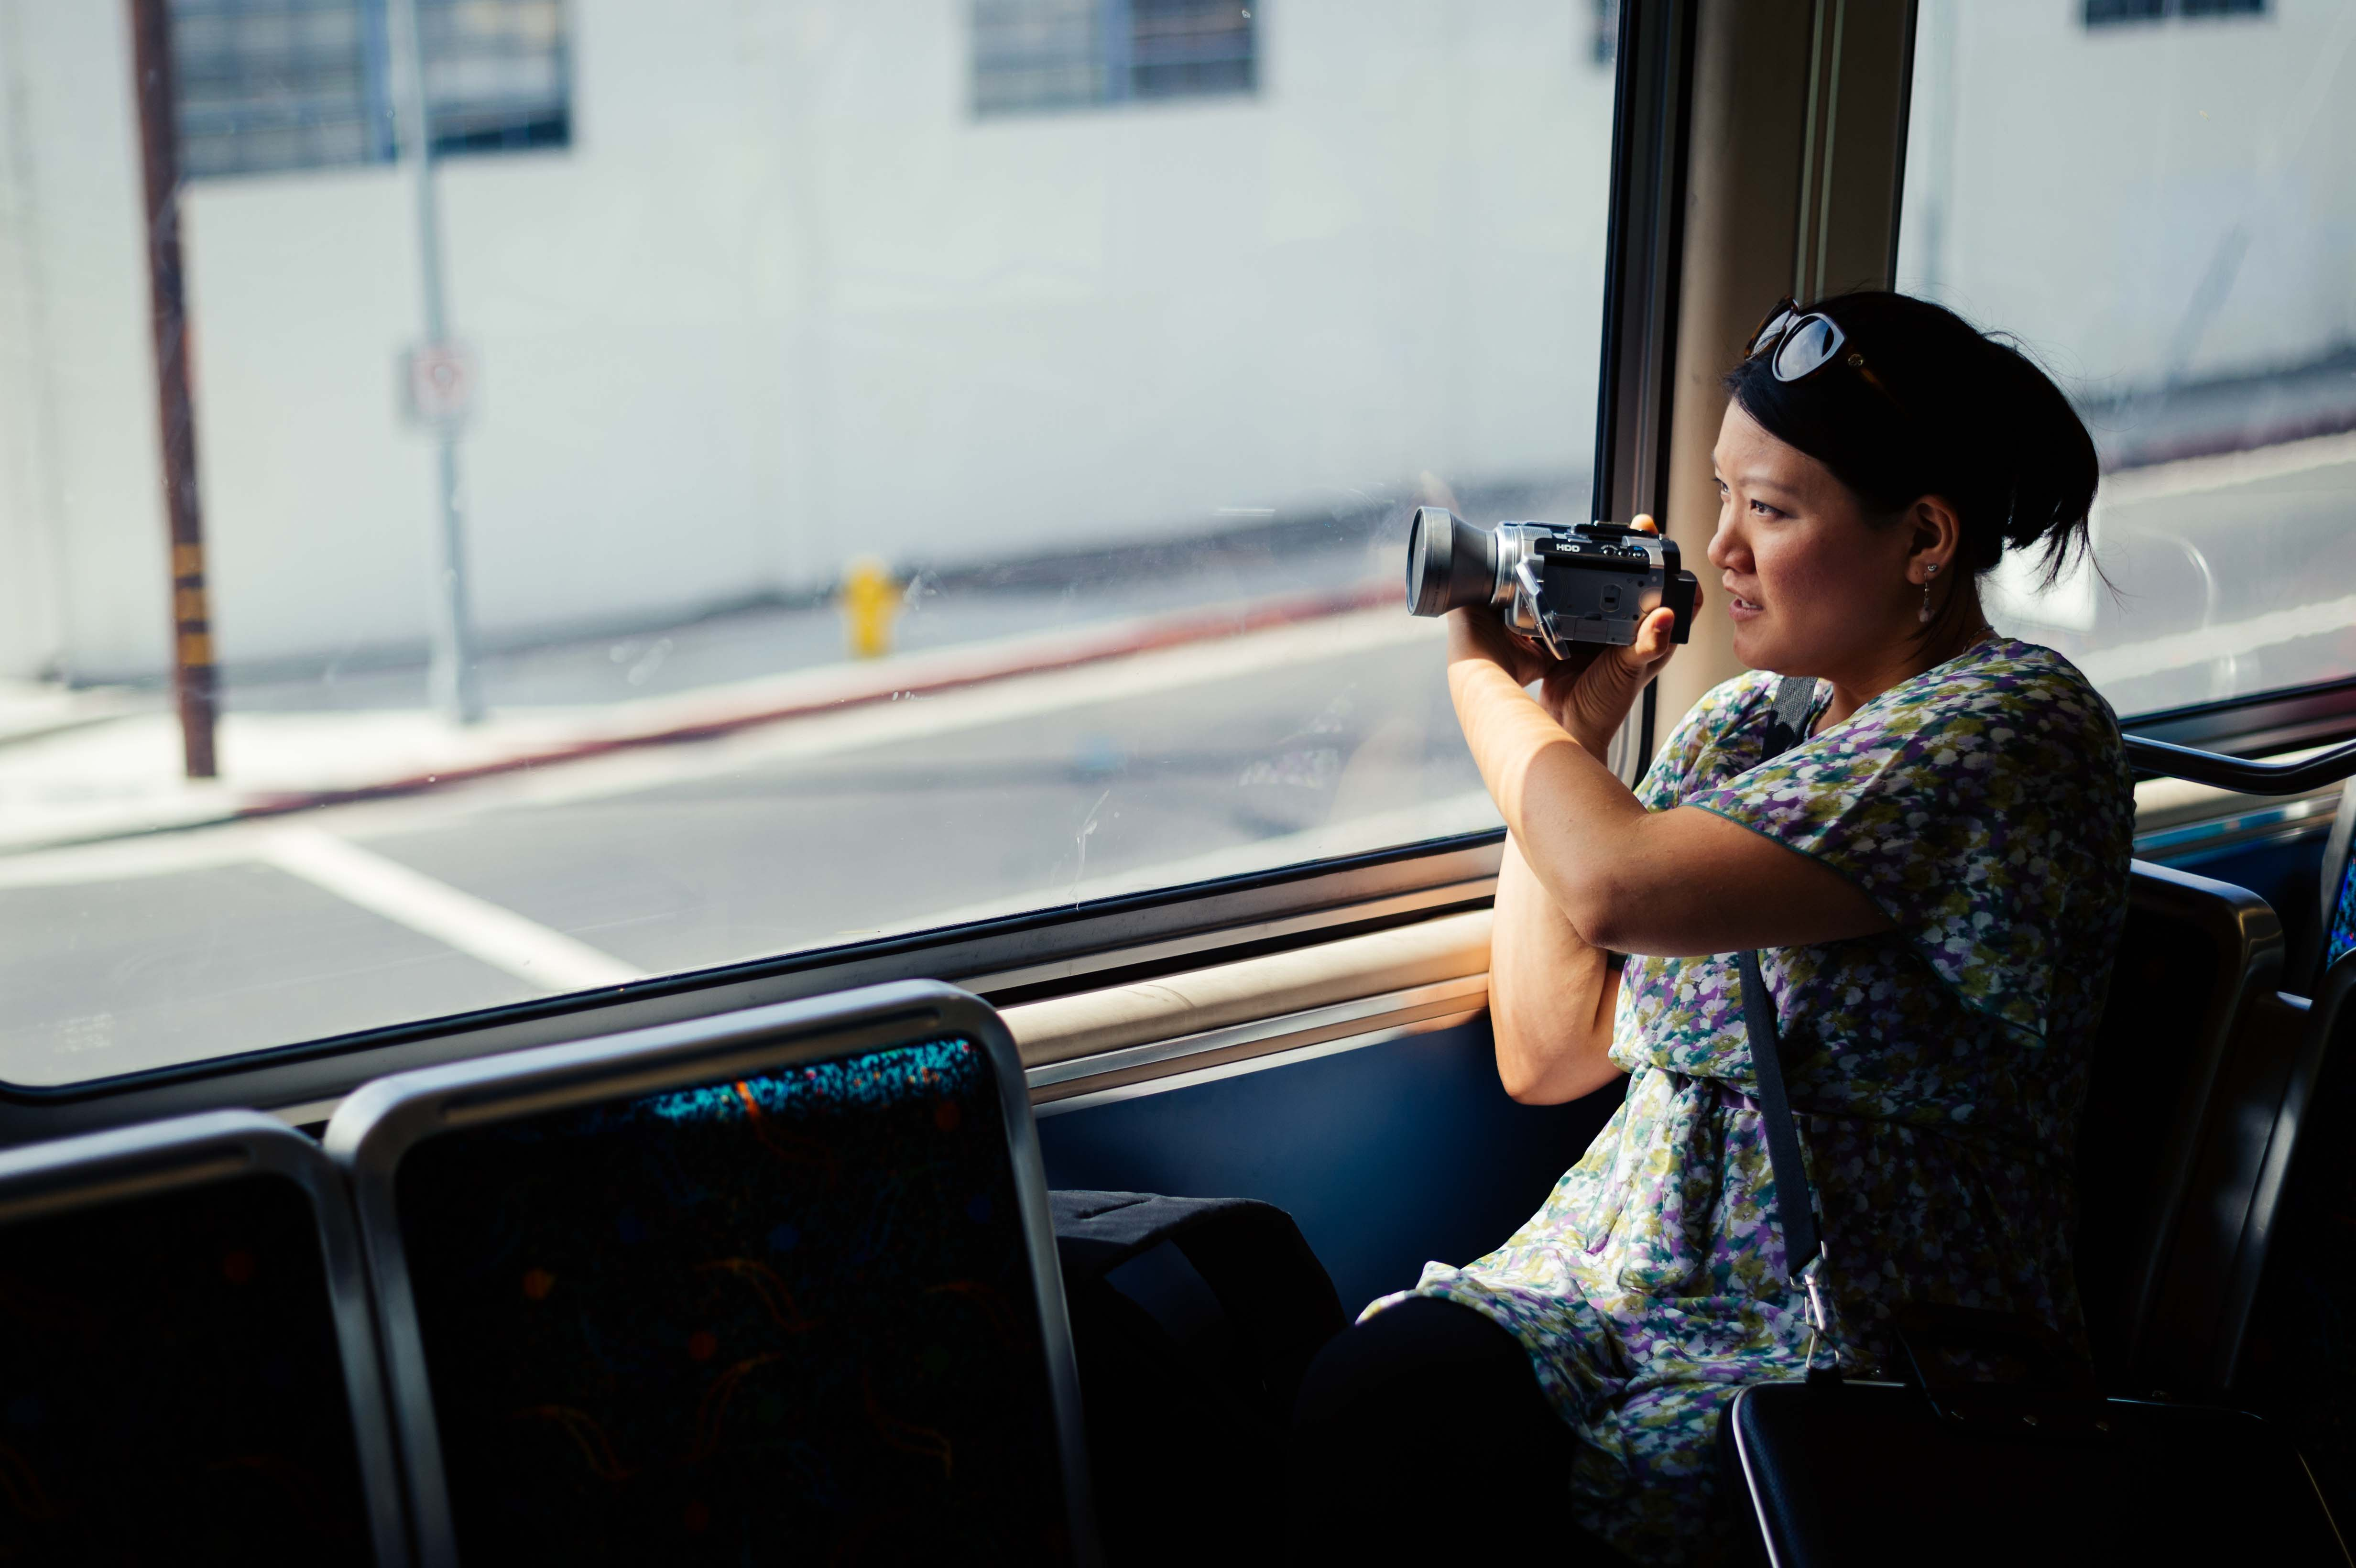 Art of Transit: My colleague Anna Chen collecting footage on the Expo Line for a video to promote ride sharing. Click above for recent posts on Rideshare Week. Photo by Steve Hymon/Metro.